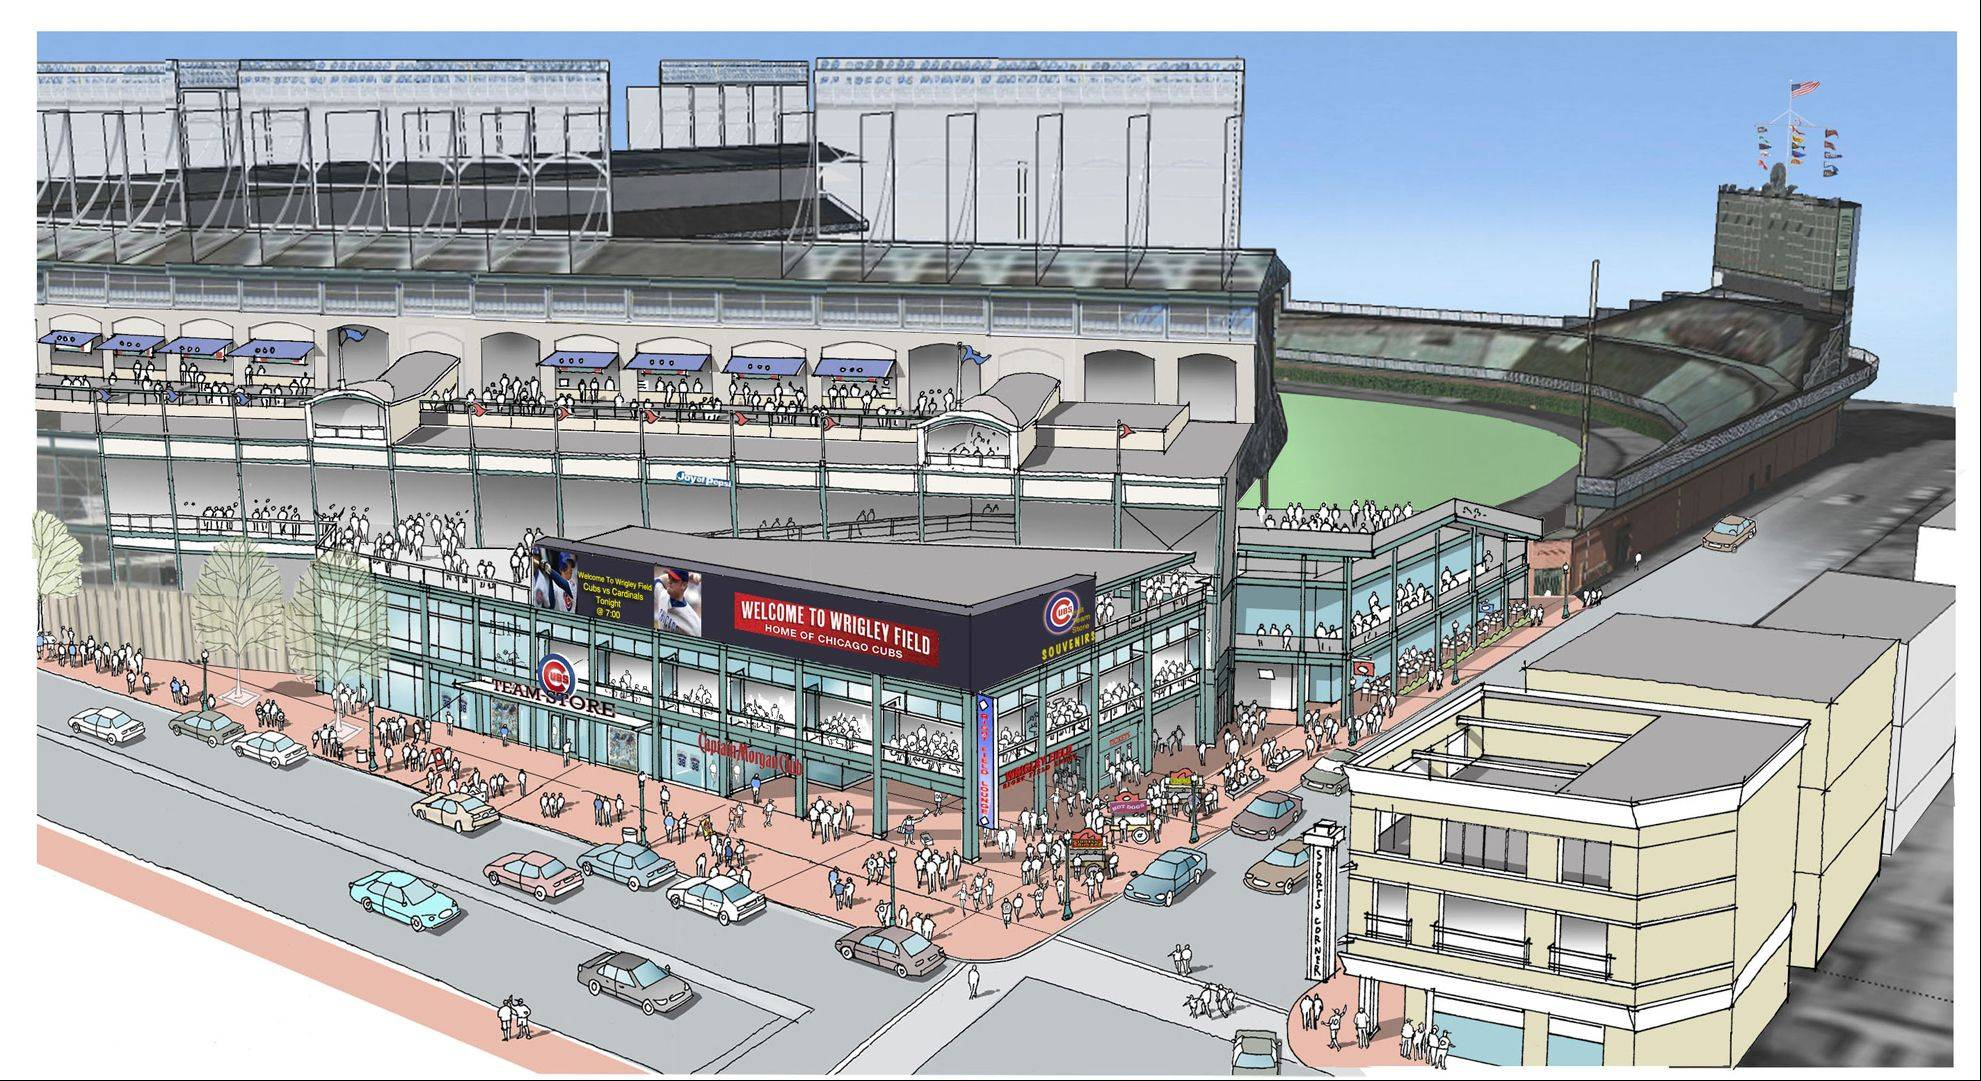 This artist rendering shows renovations planned at Wrigley Field. Part of the $500 million renovation plan for the 99-year-old stadium is to build an exterior plaza at the corner of Addison and Sheffield.